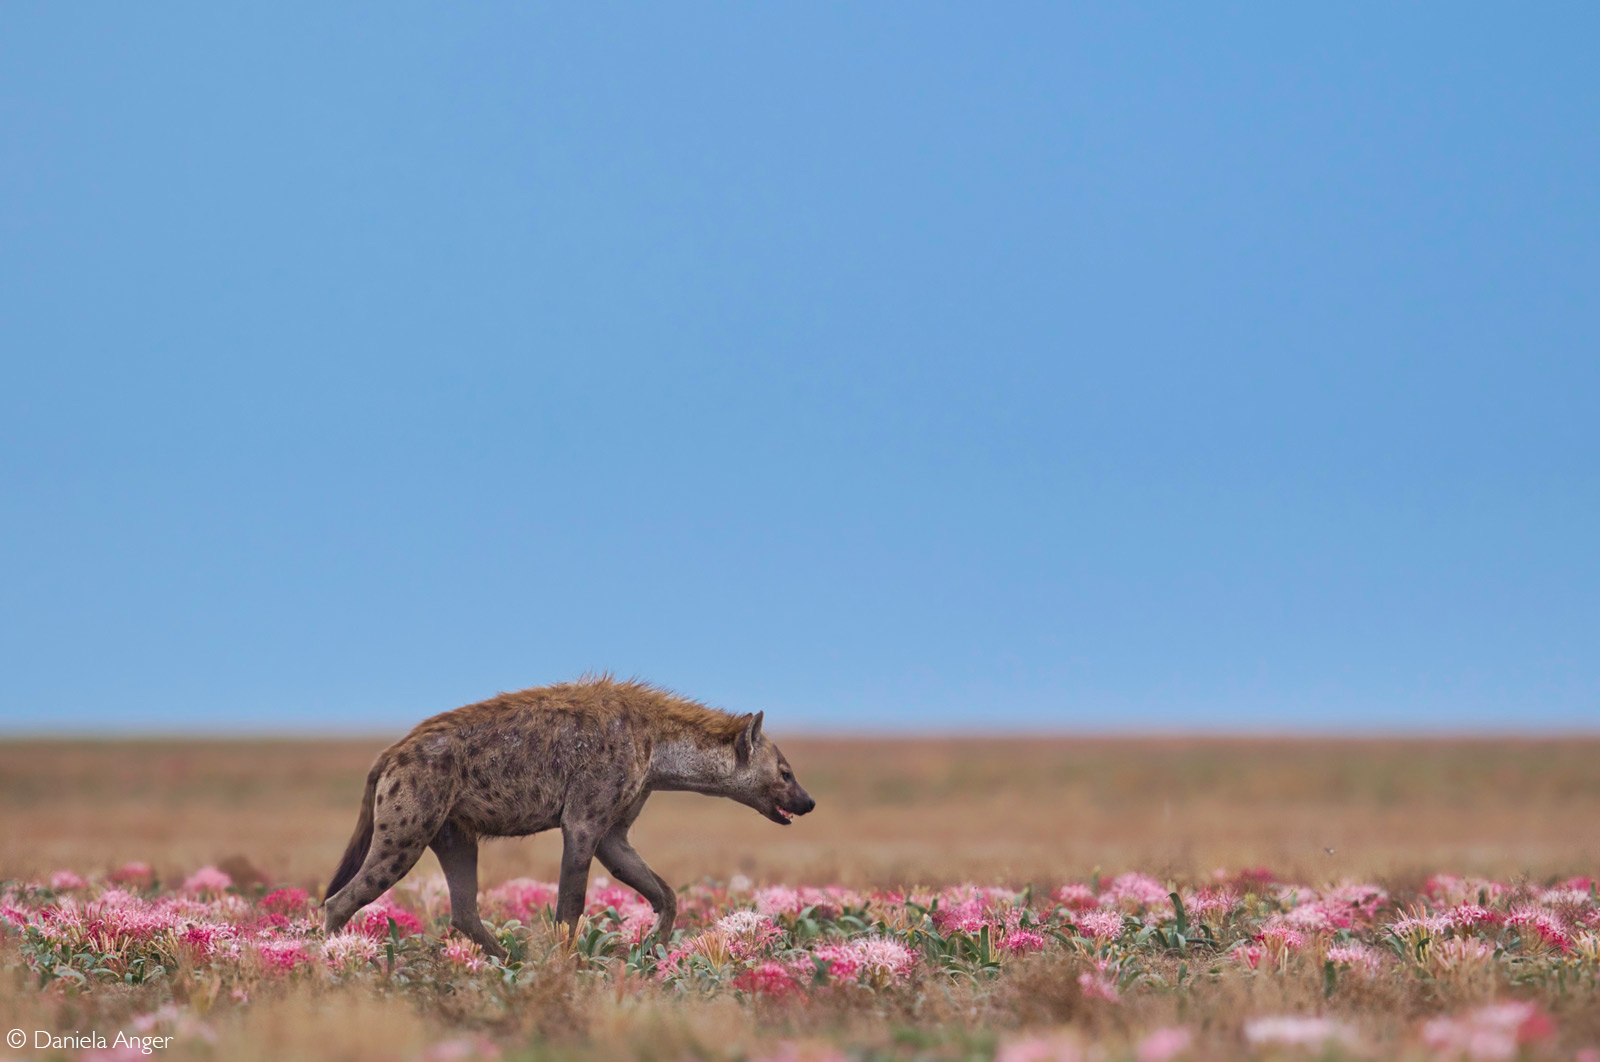 A spotted hyena walks through the plain after the first rains. Liuwa Plain National Park, Zambia © Daniela Anger